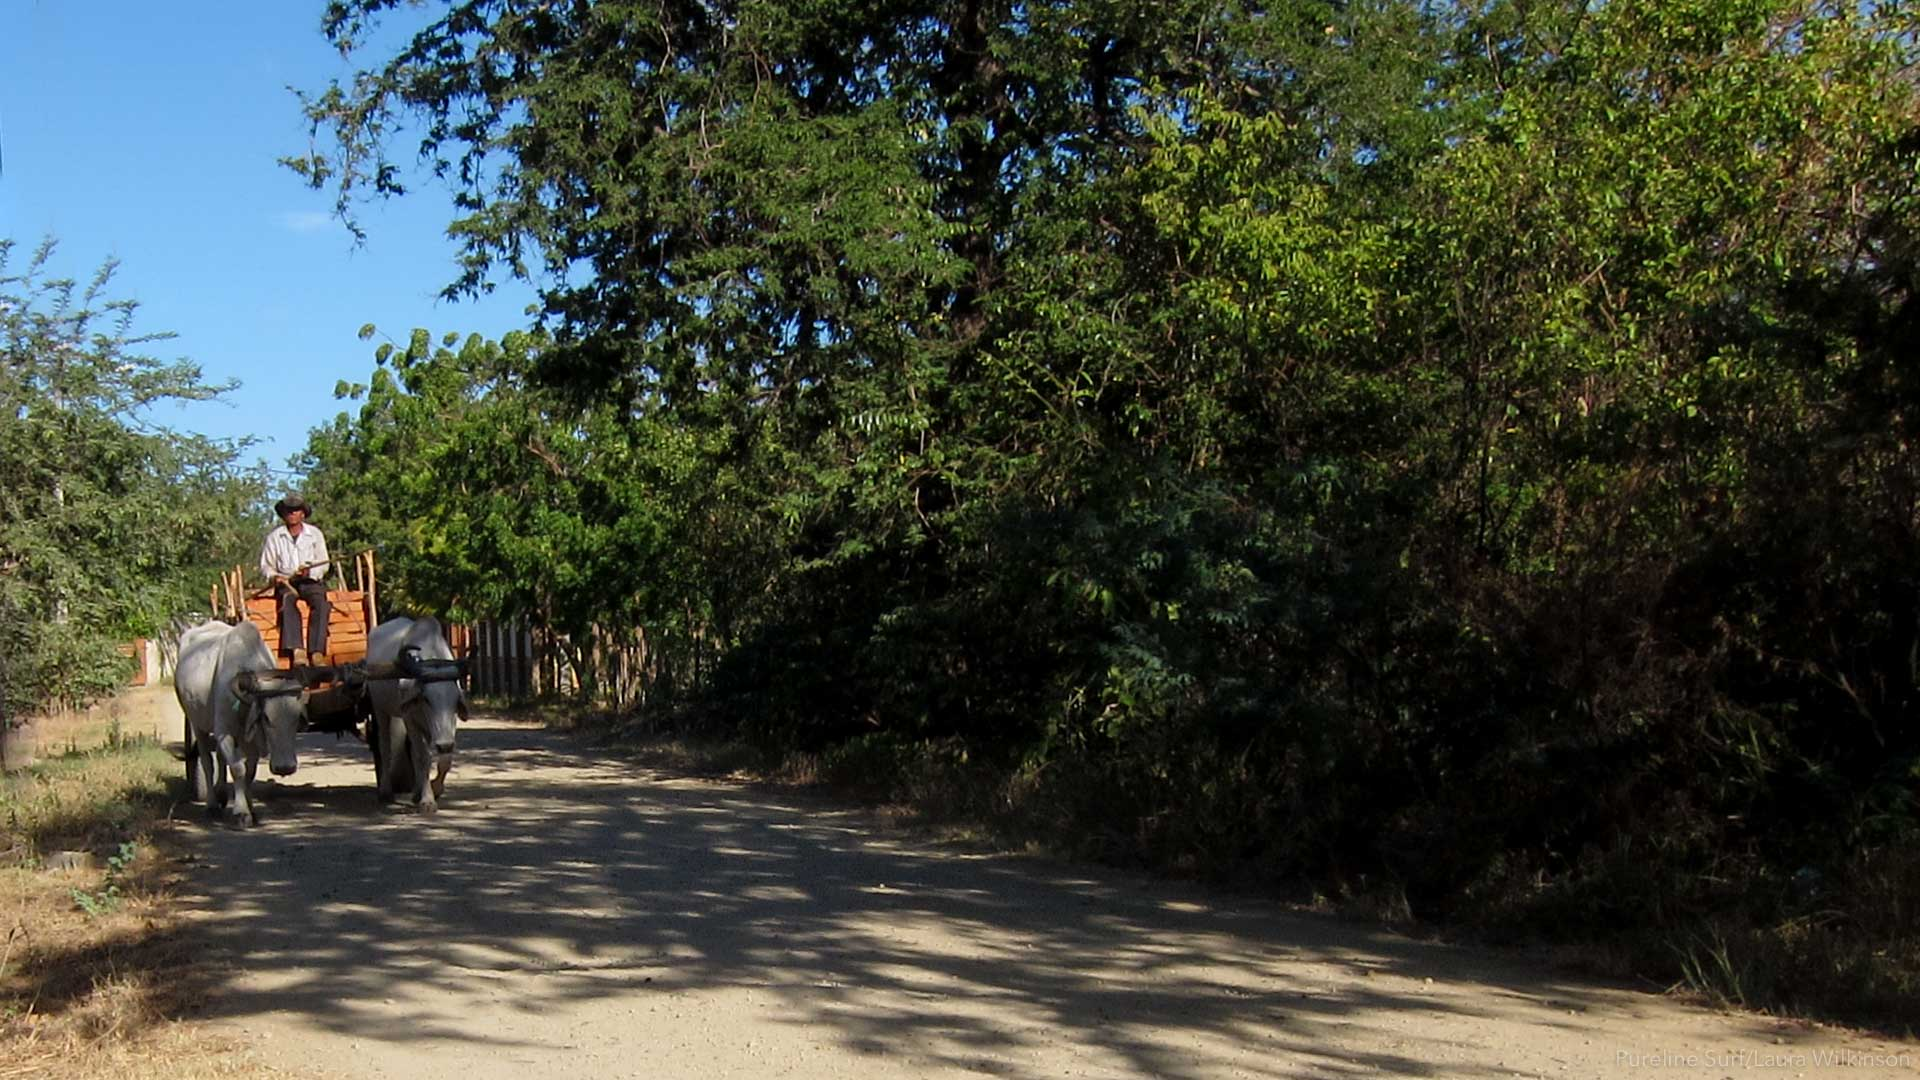 A shady road with a local man and an Ox cart. Part of the experience on a strike mission surf coaching trip with Pureline Surf.